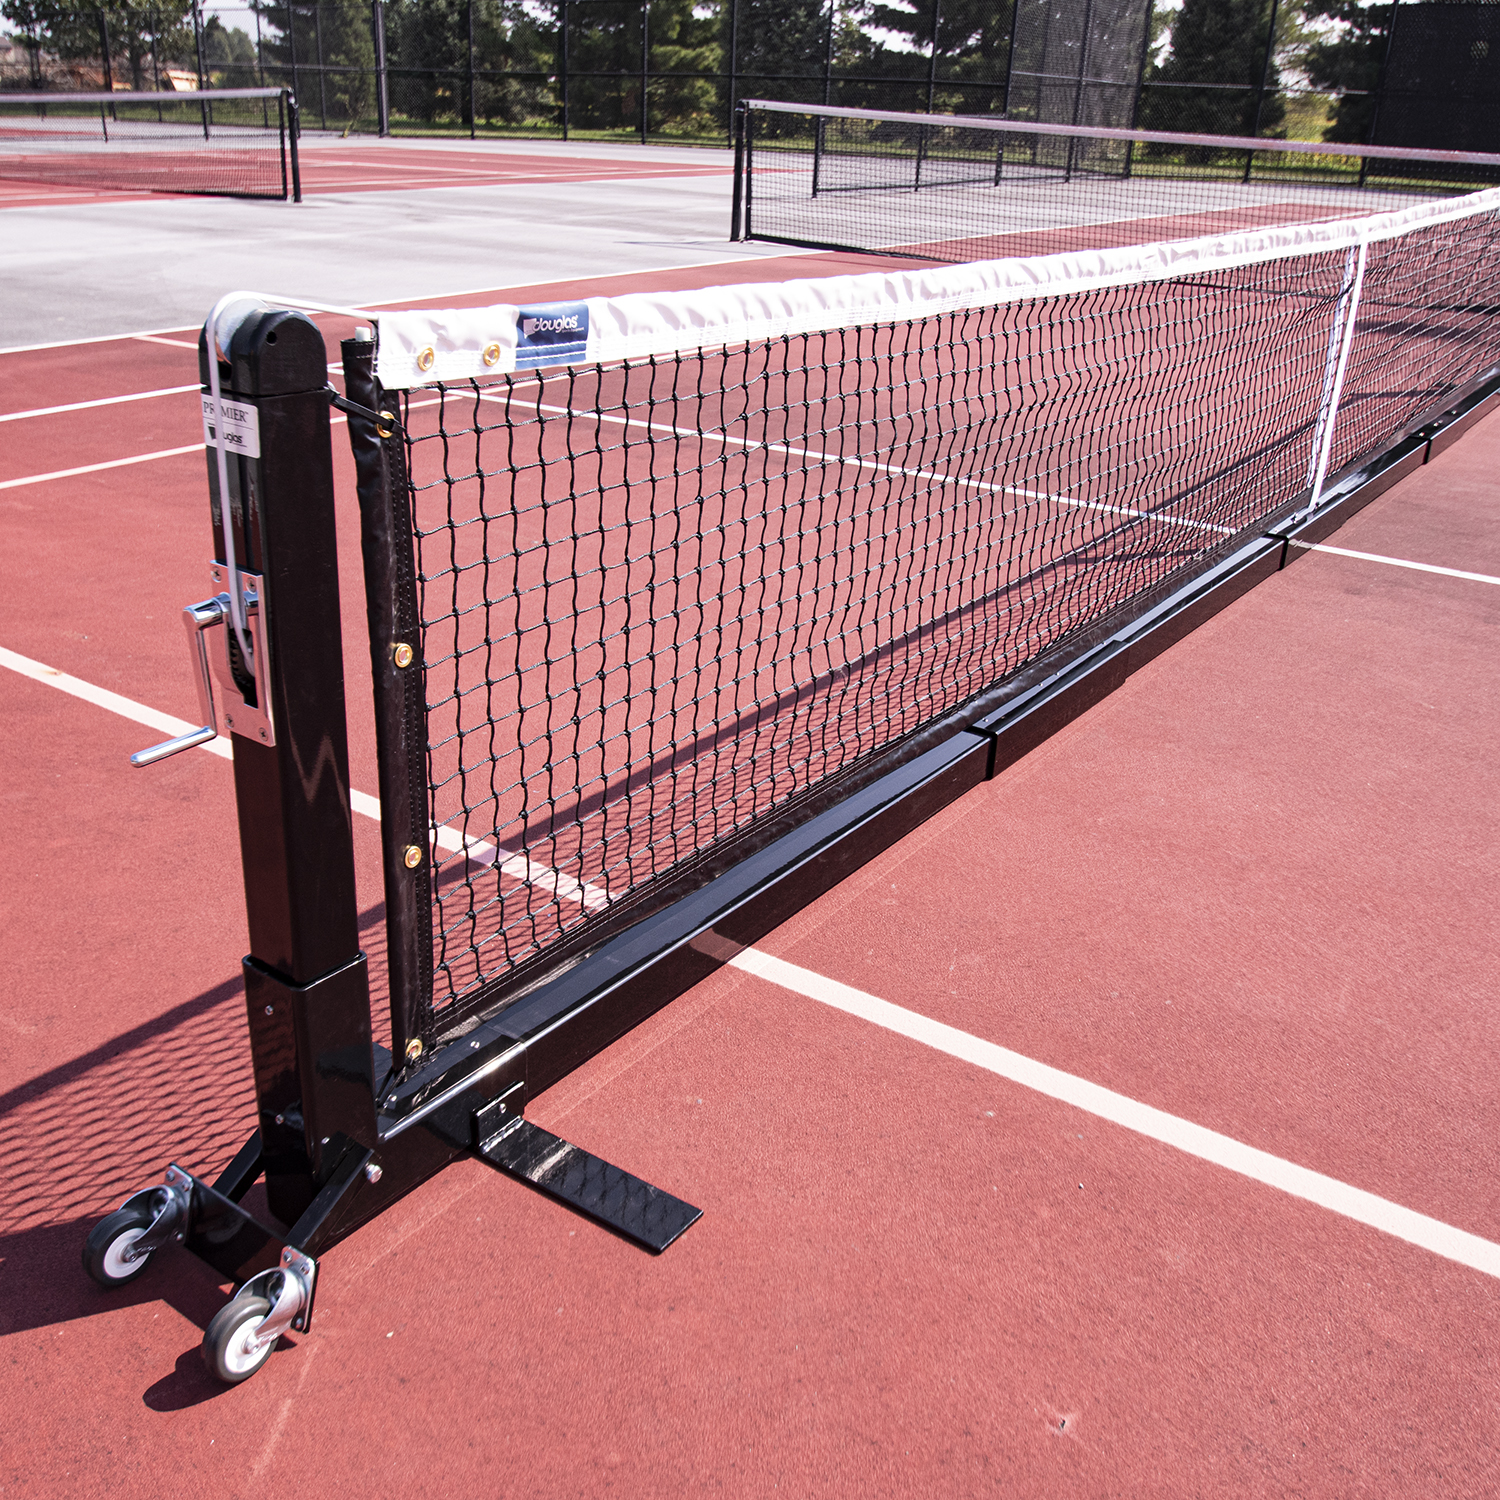 Douglas Premier Pps22 Sq Portable Pickleball System National Sports Products